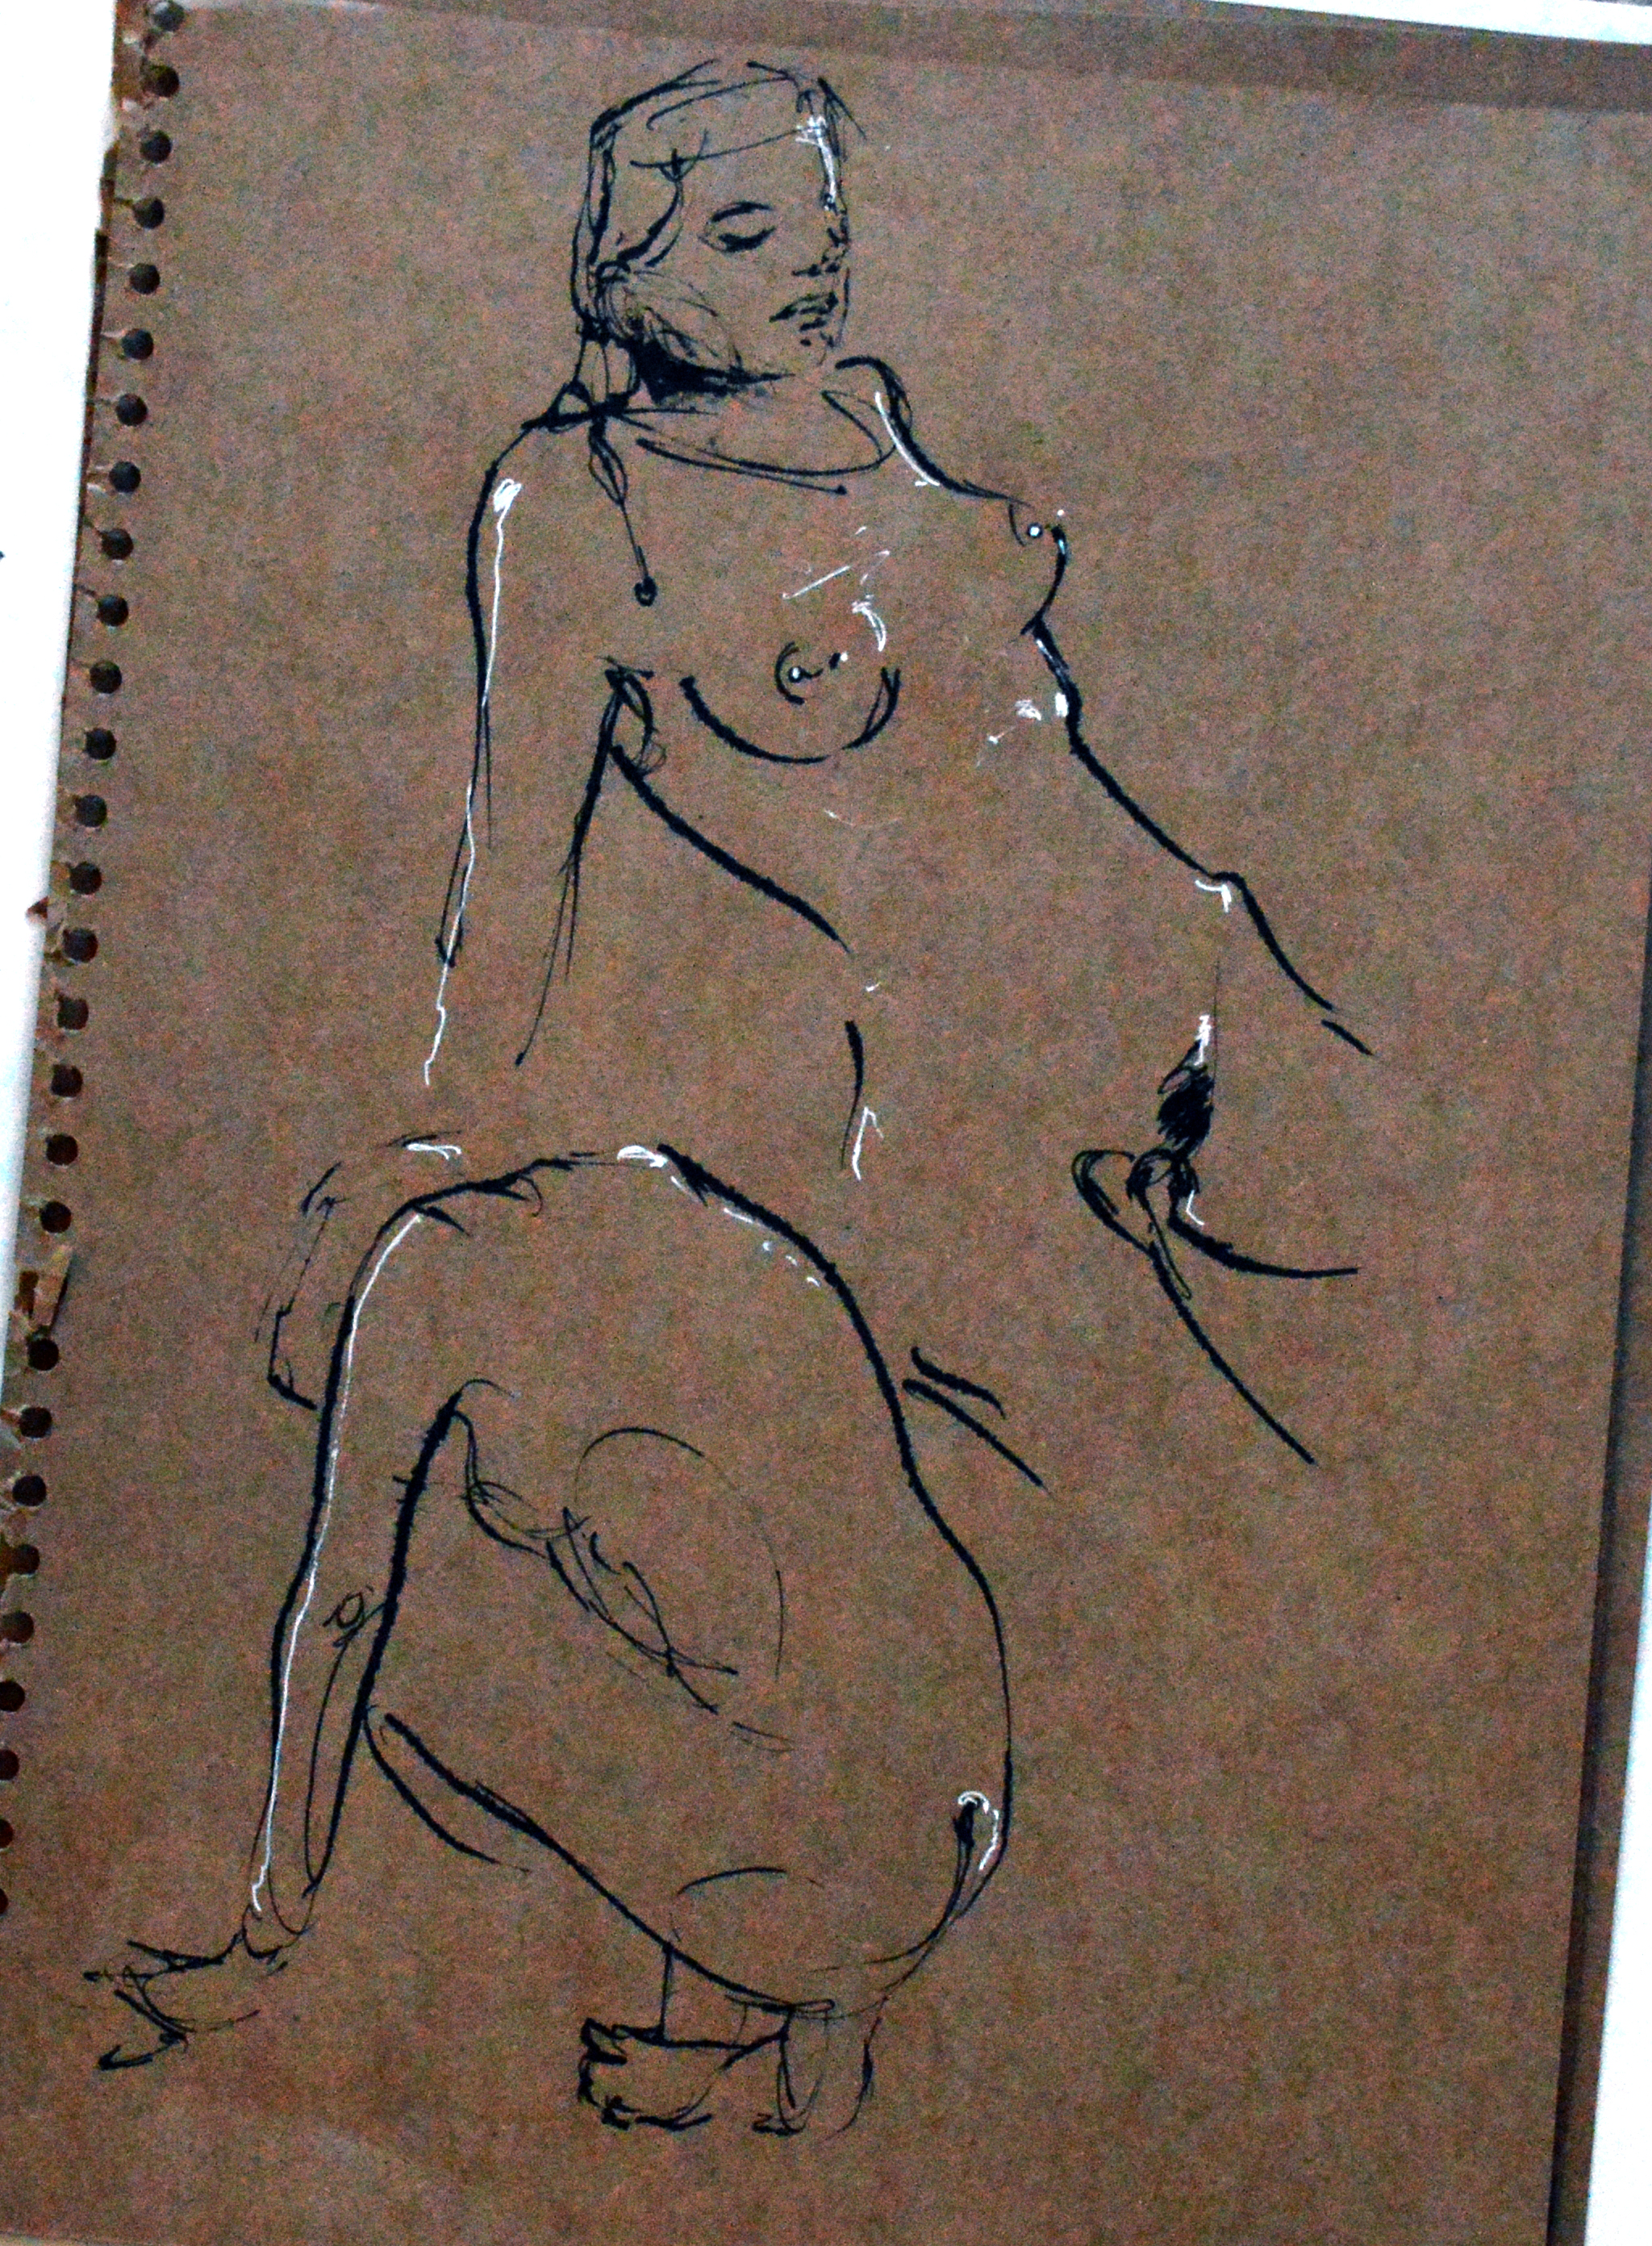 lifedrawing sketch